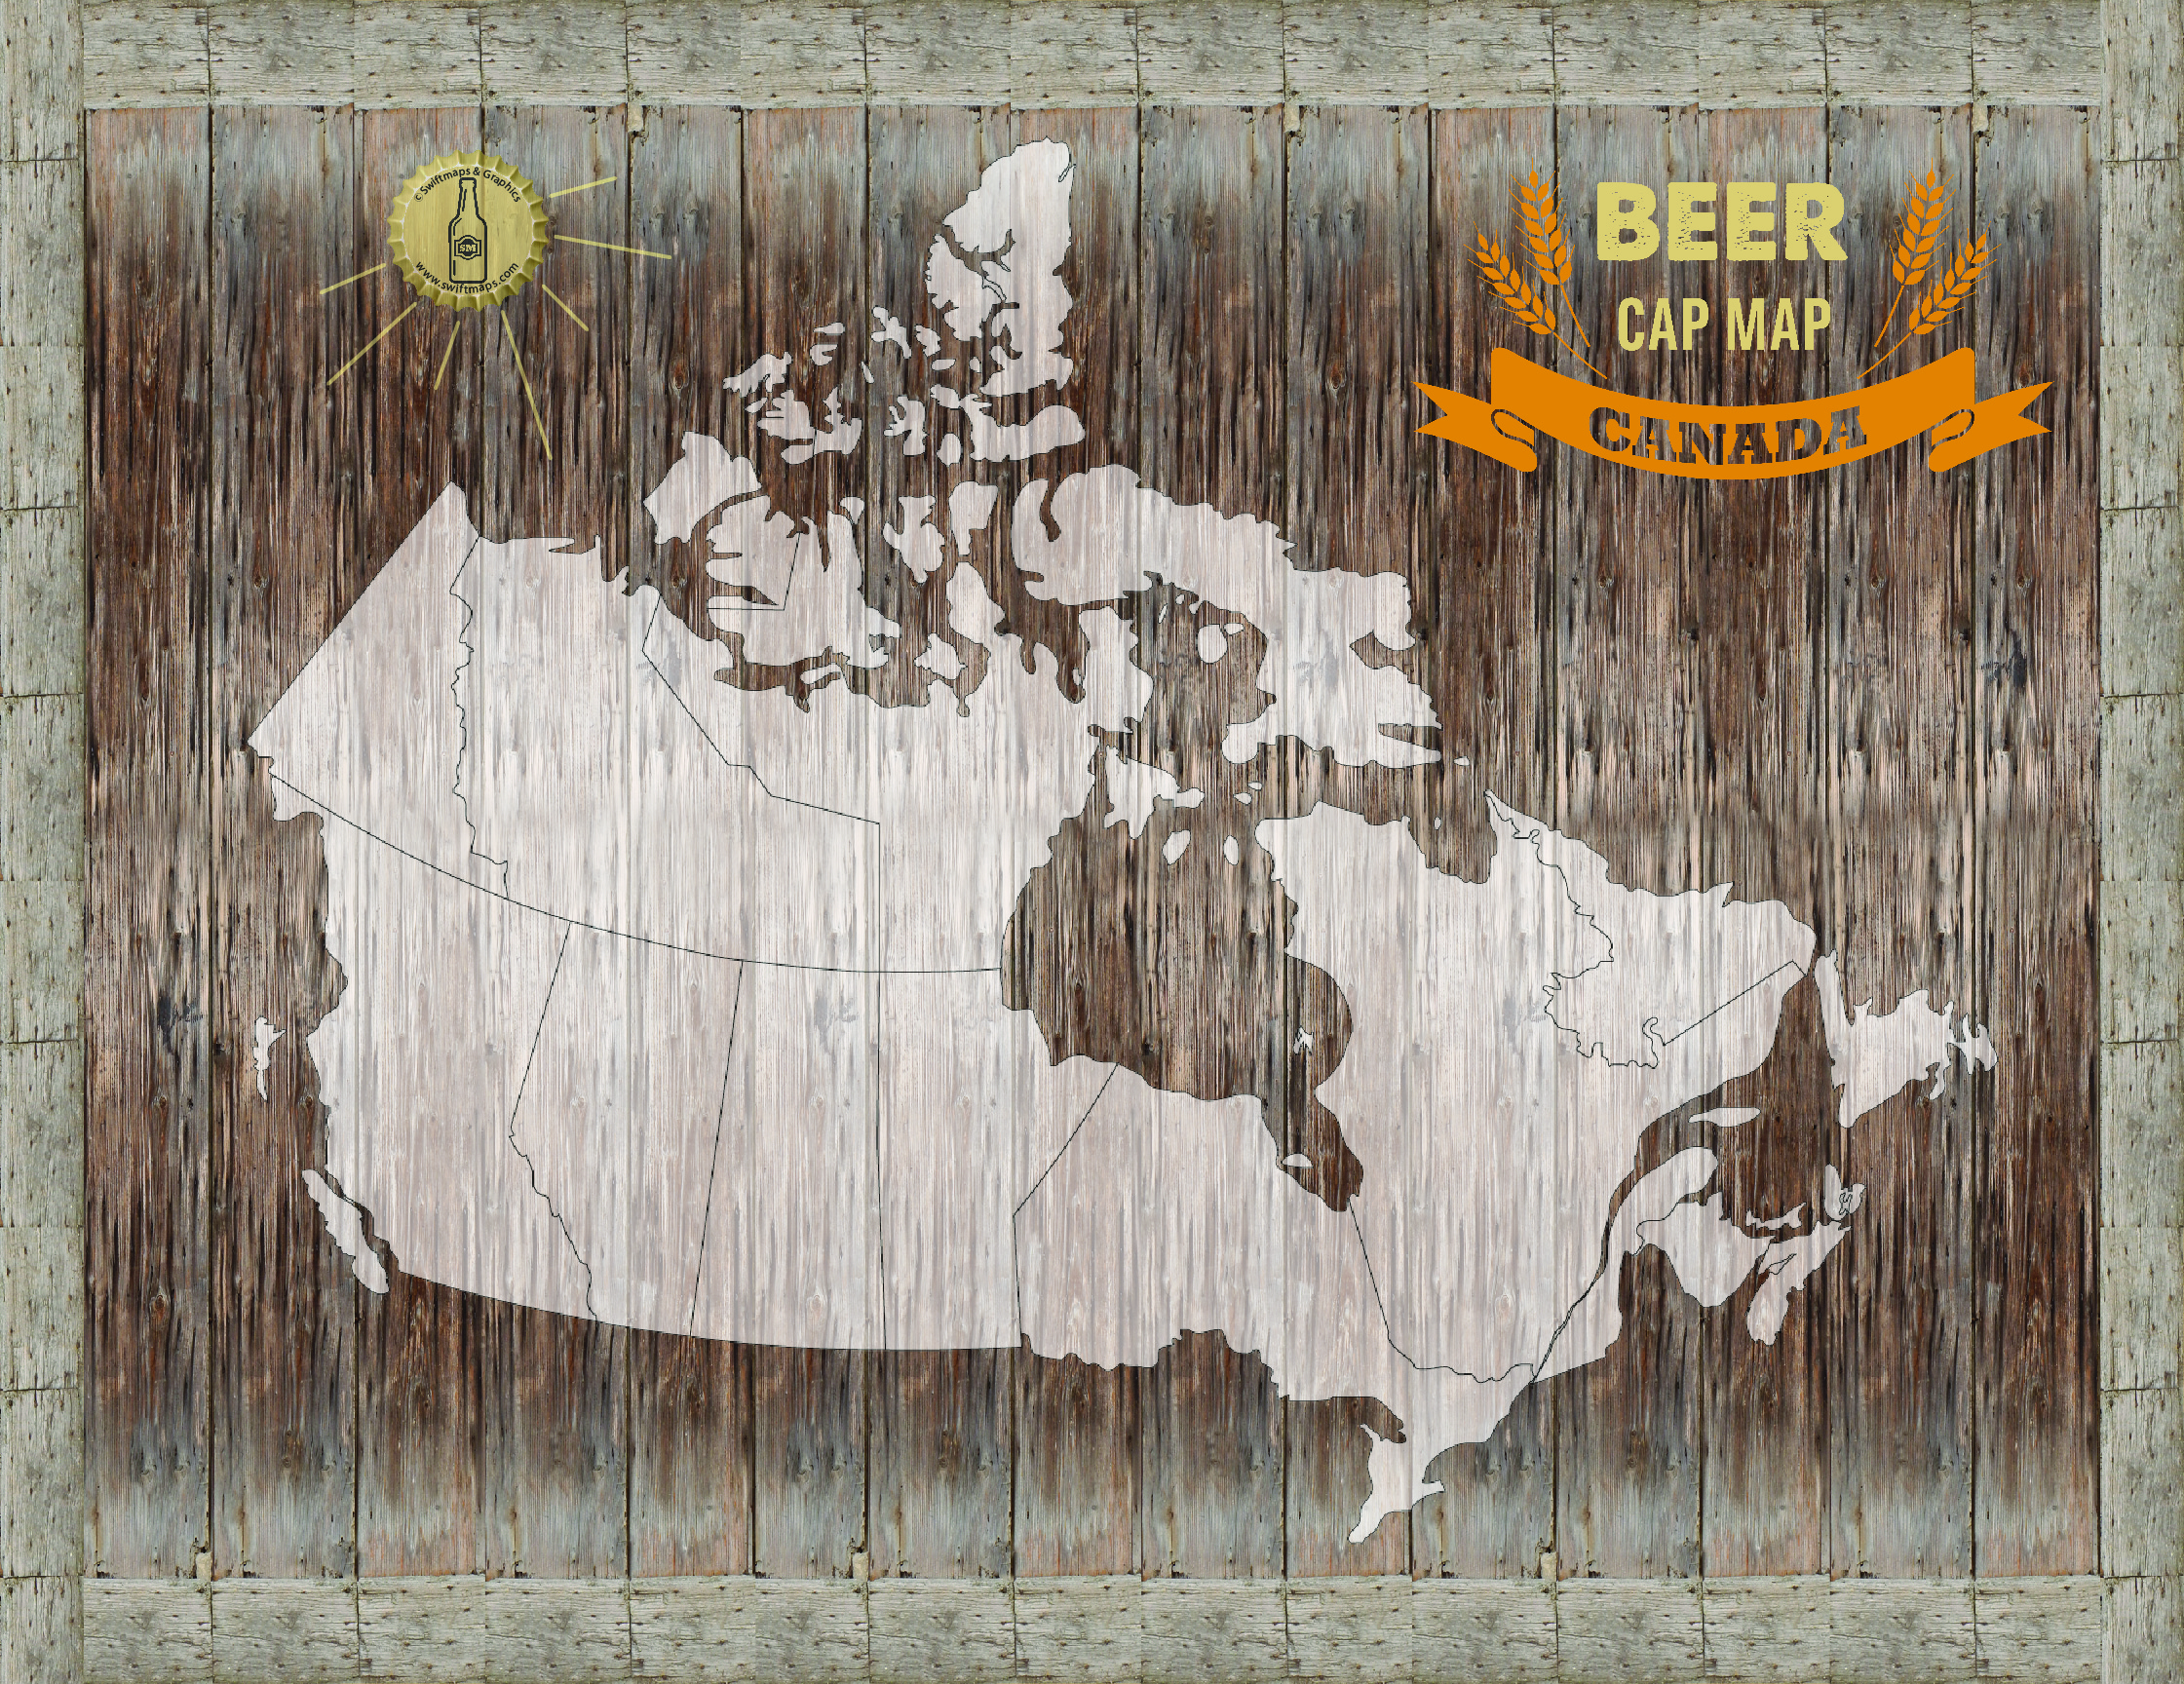 Magnetic canada beer cap map swiftmaps canada beer cap map gumiabroncs Image collections